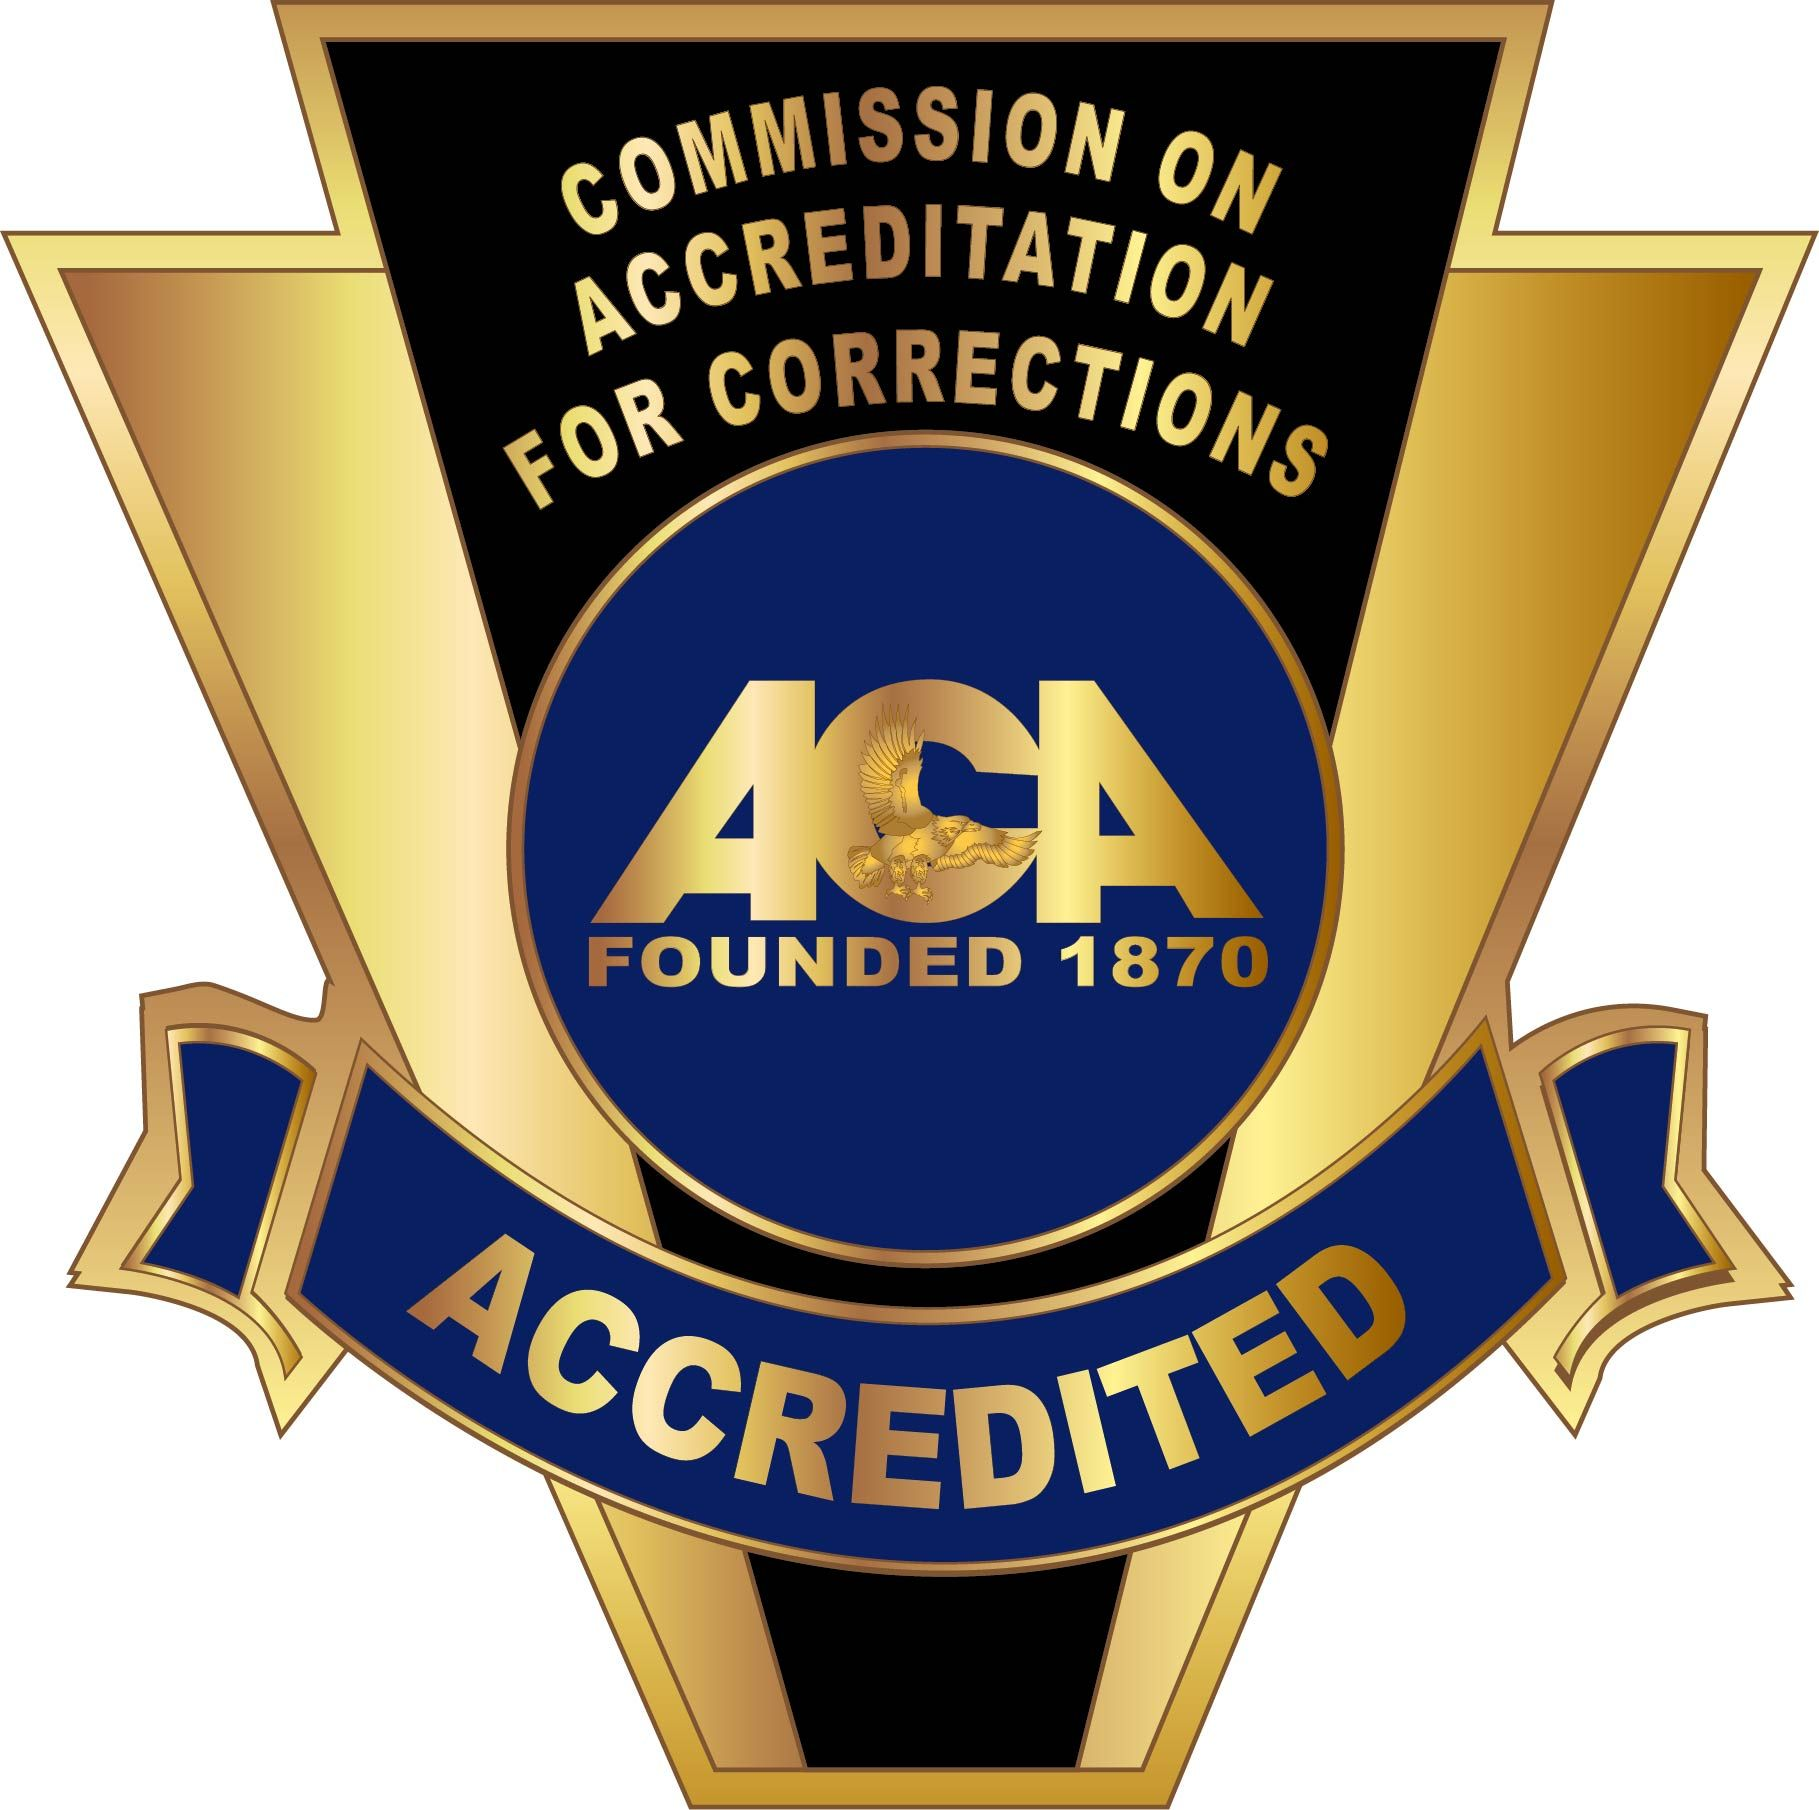 ACA Accreditation